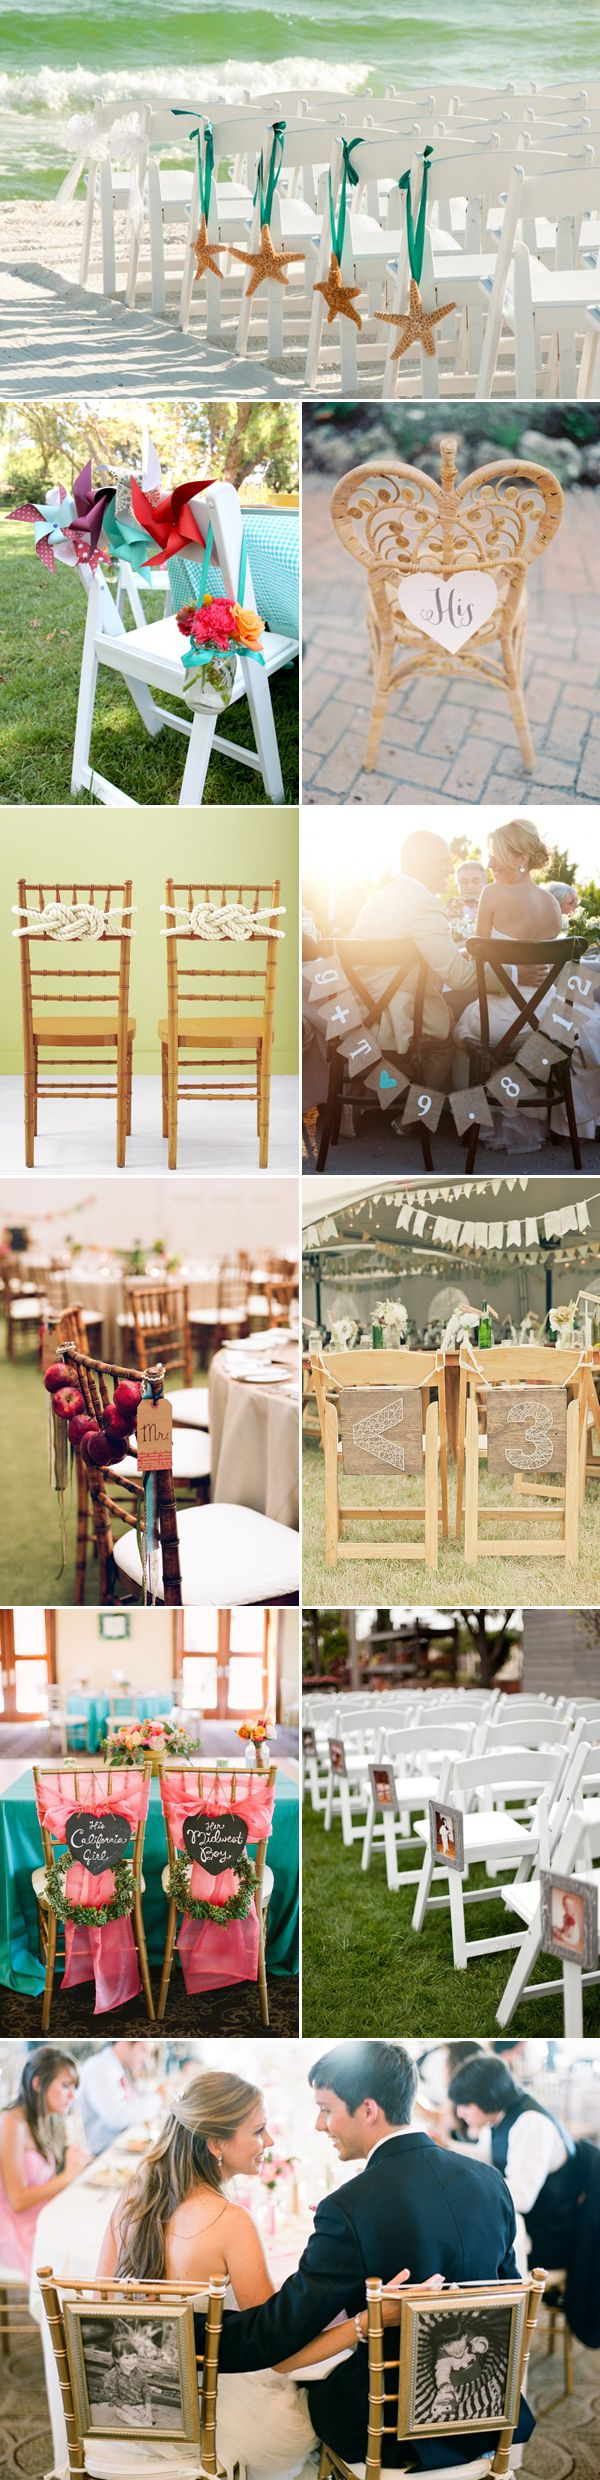 33 Summer Wedding Chair Décor Ideas